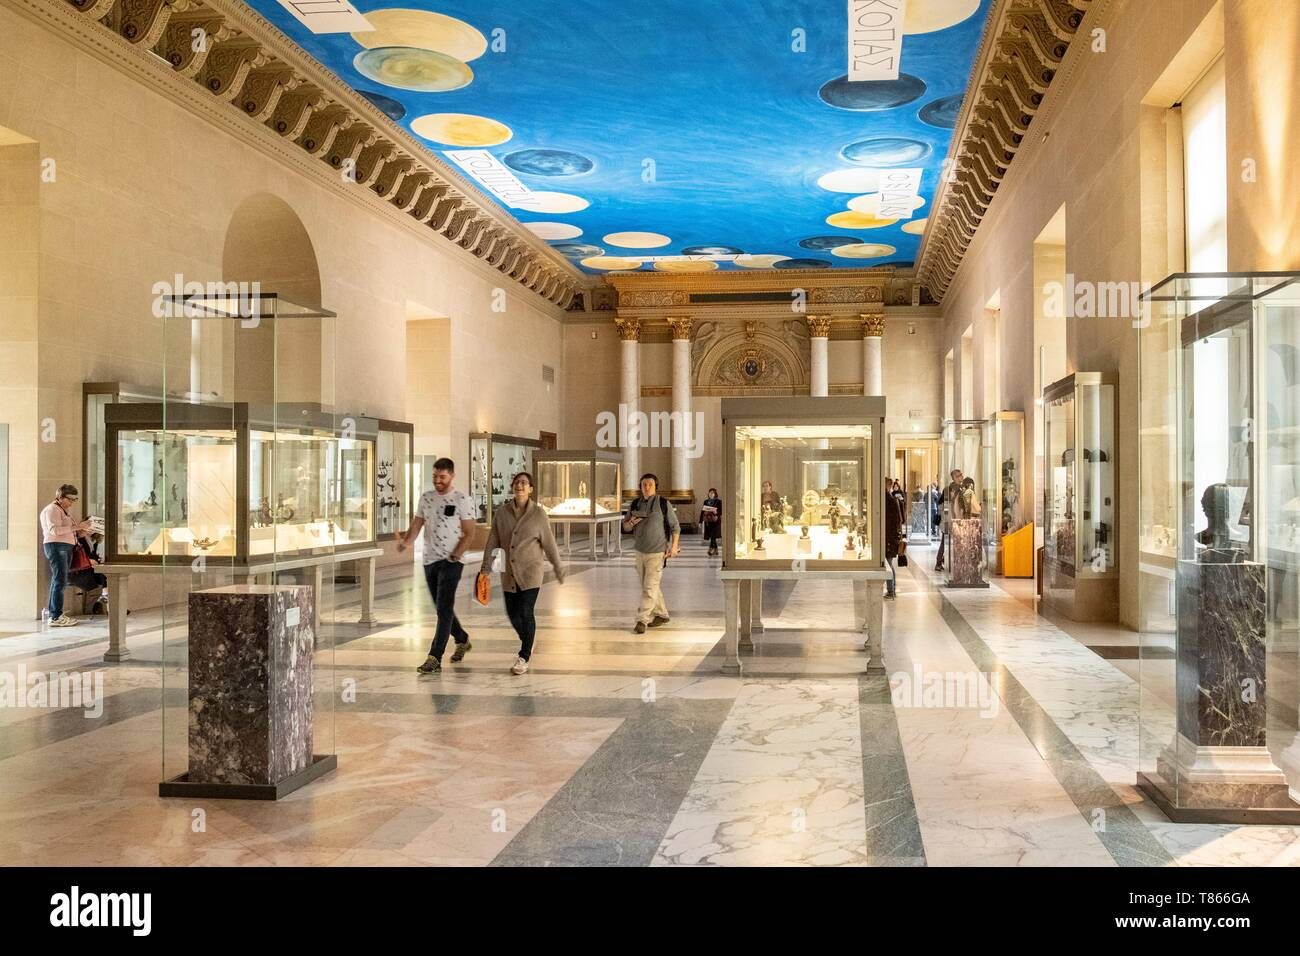 France, Paris, the Louvre Museum, Department of Greek, Etruscan and Roman Antiquities, the Bronzes Room 32 - Stock Image